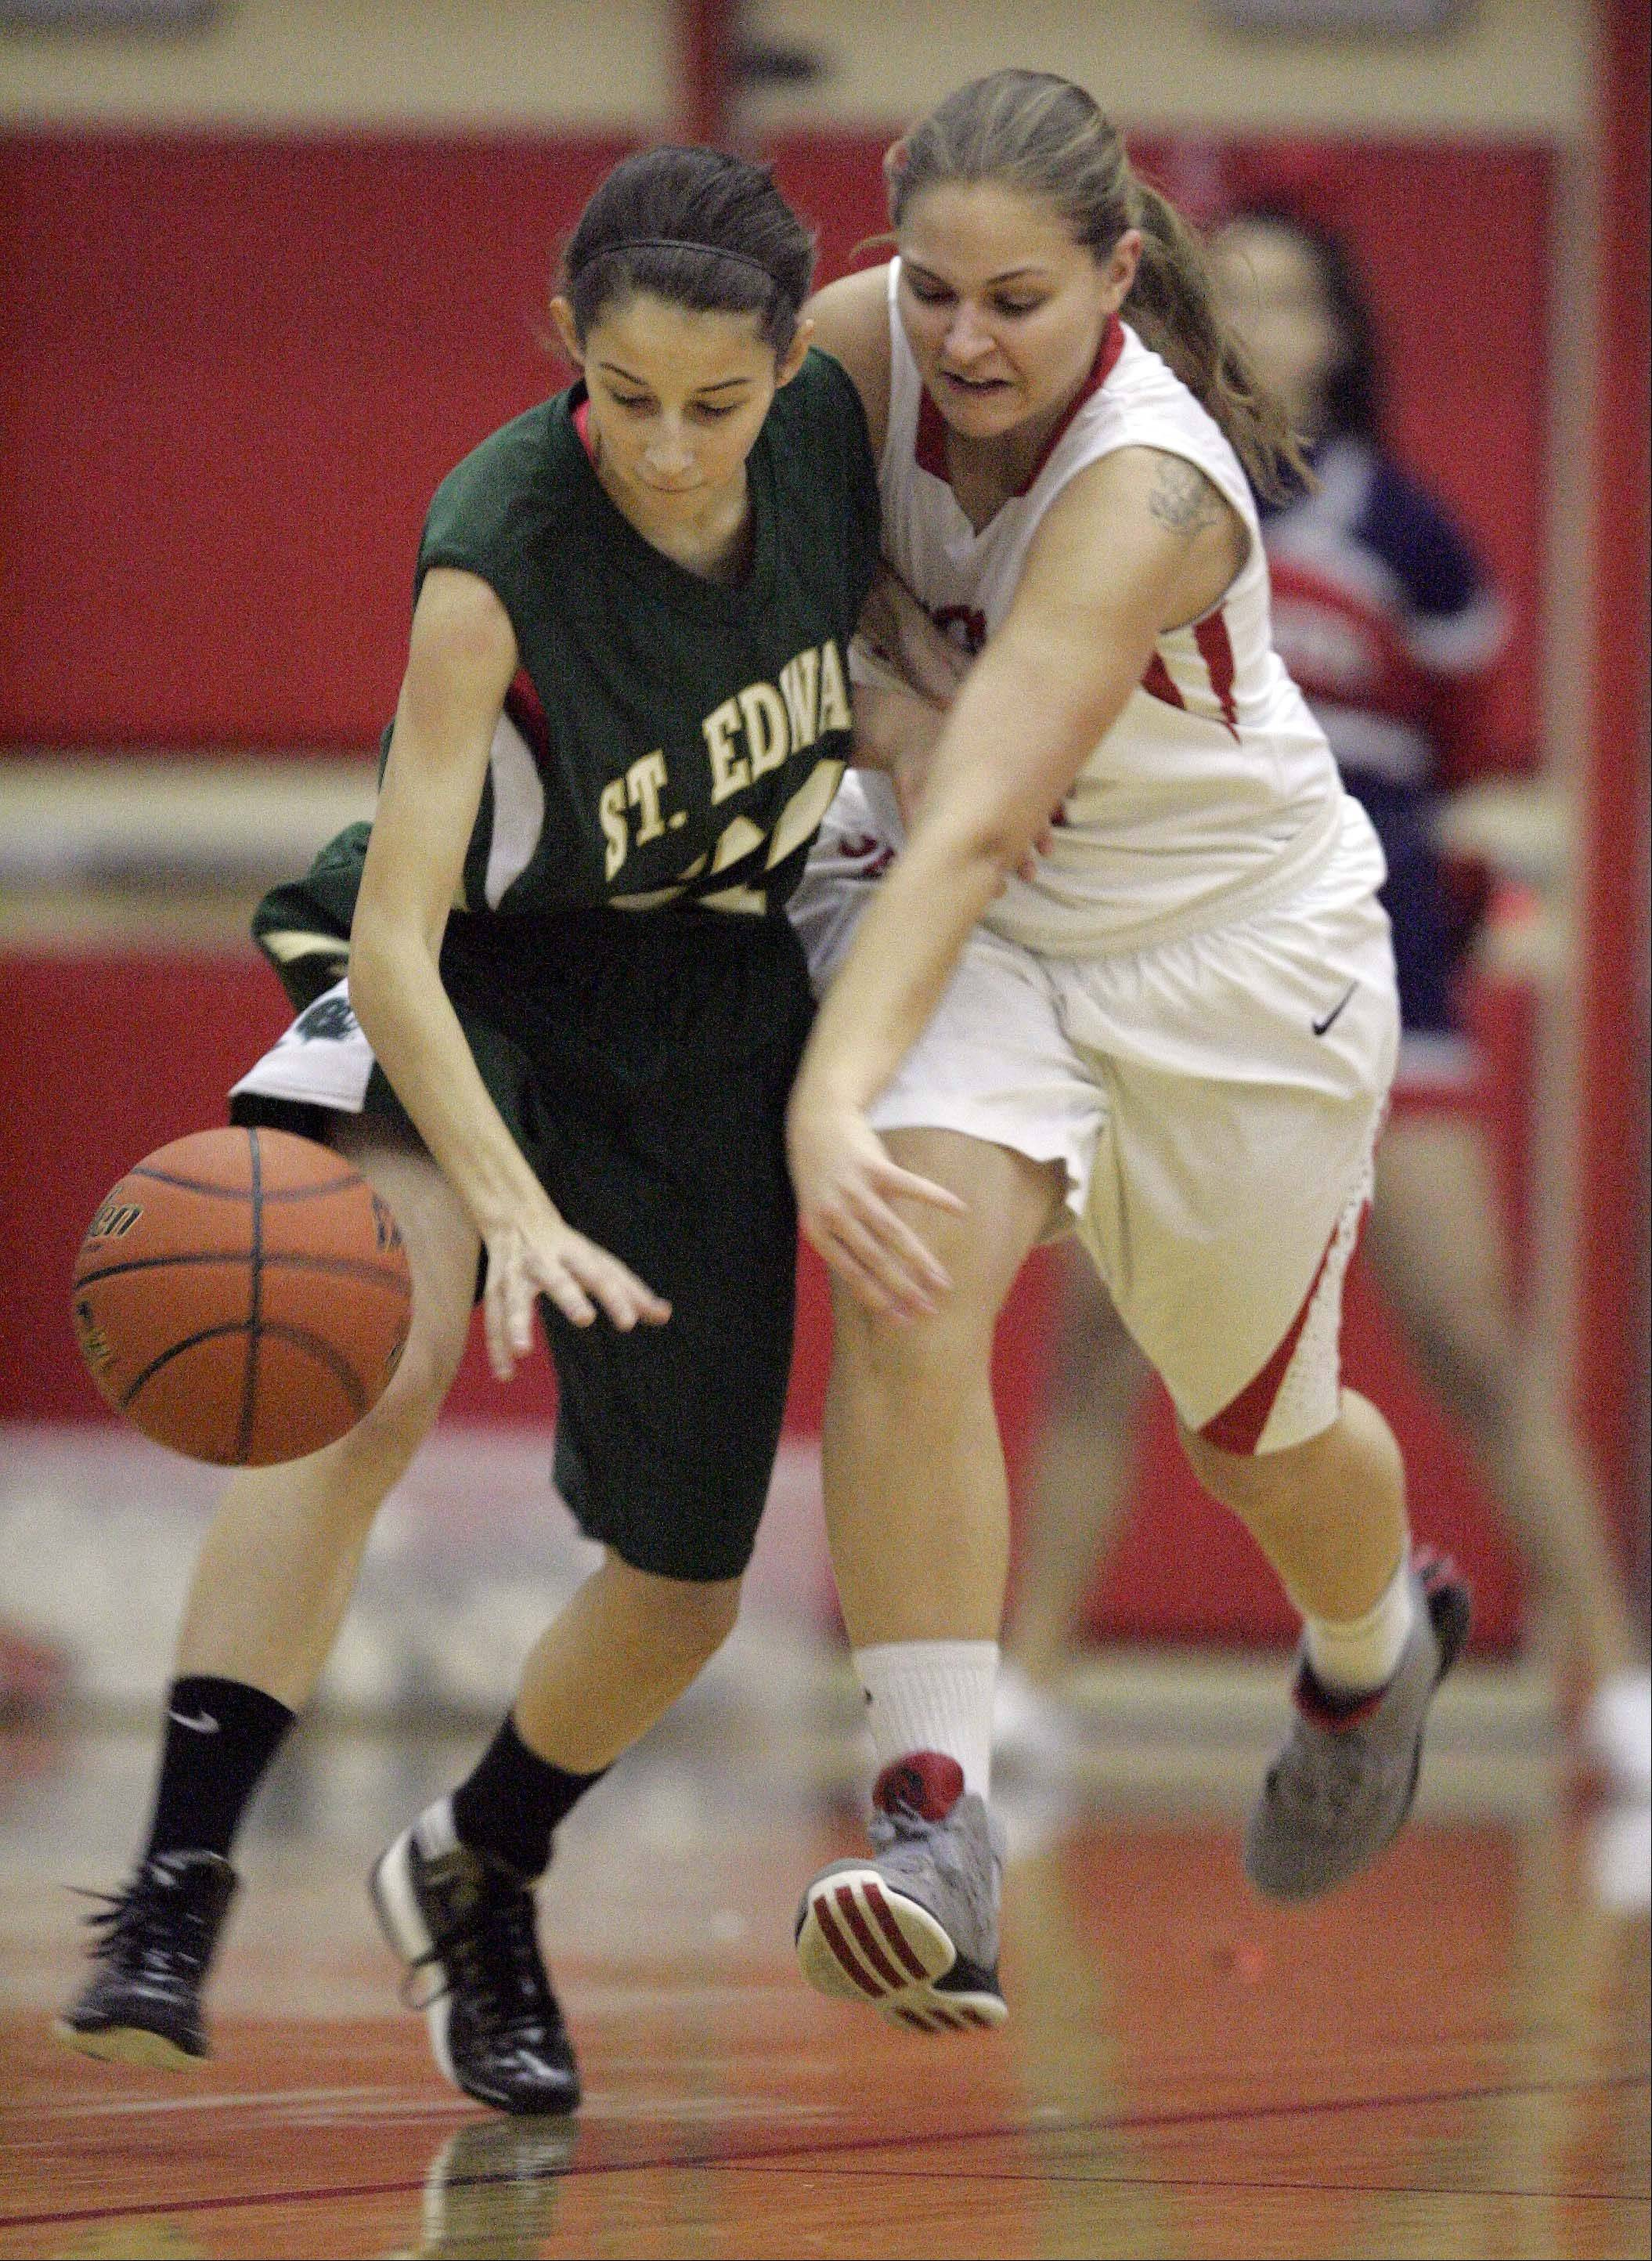 Images: St. Edward vs. South Elgin girls basketball